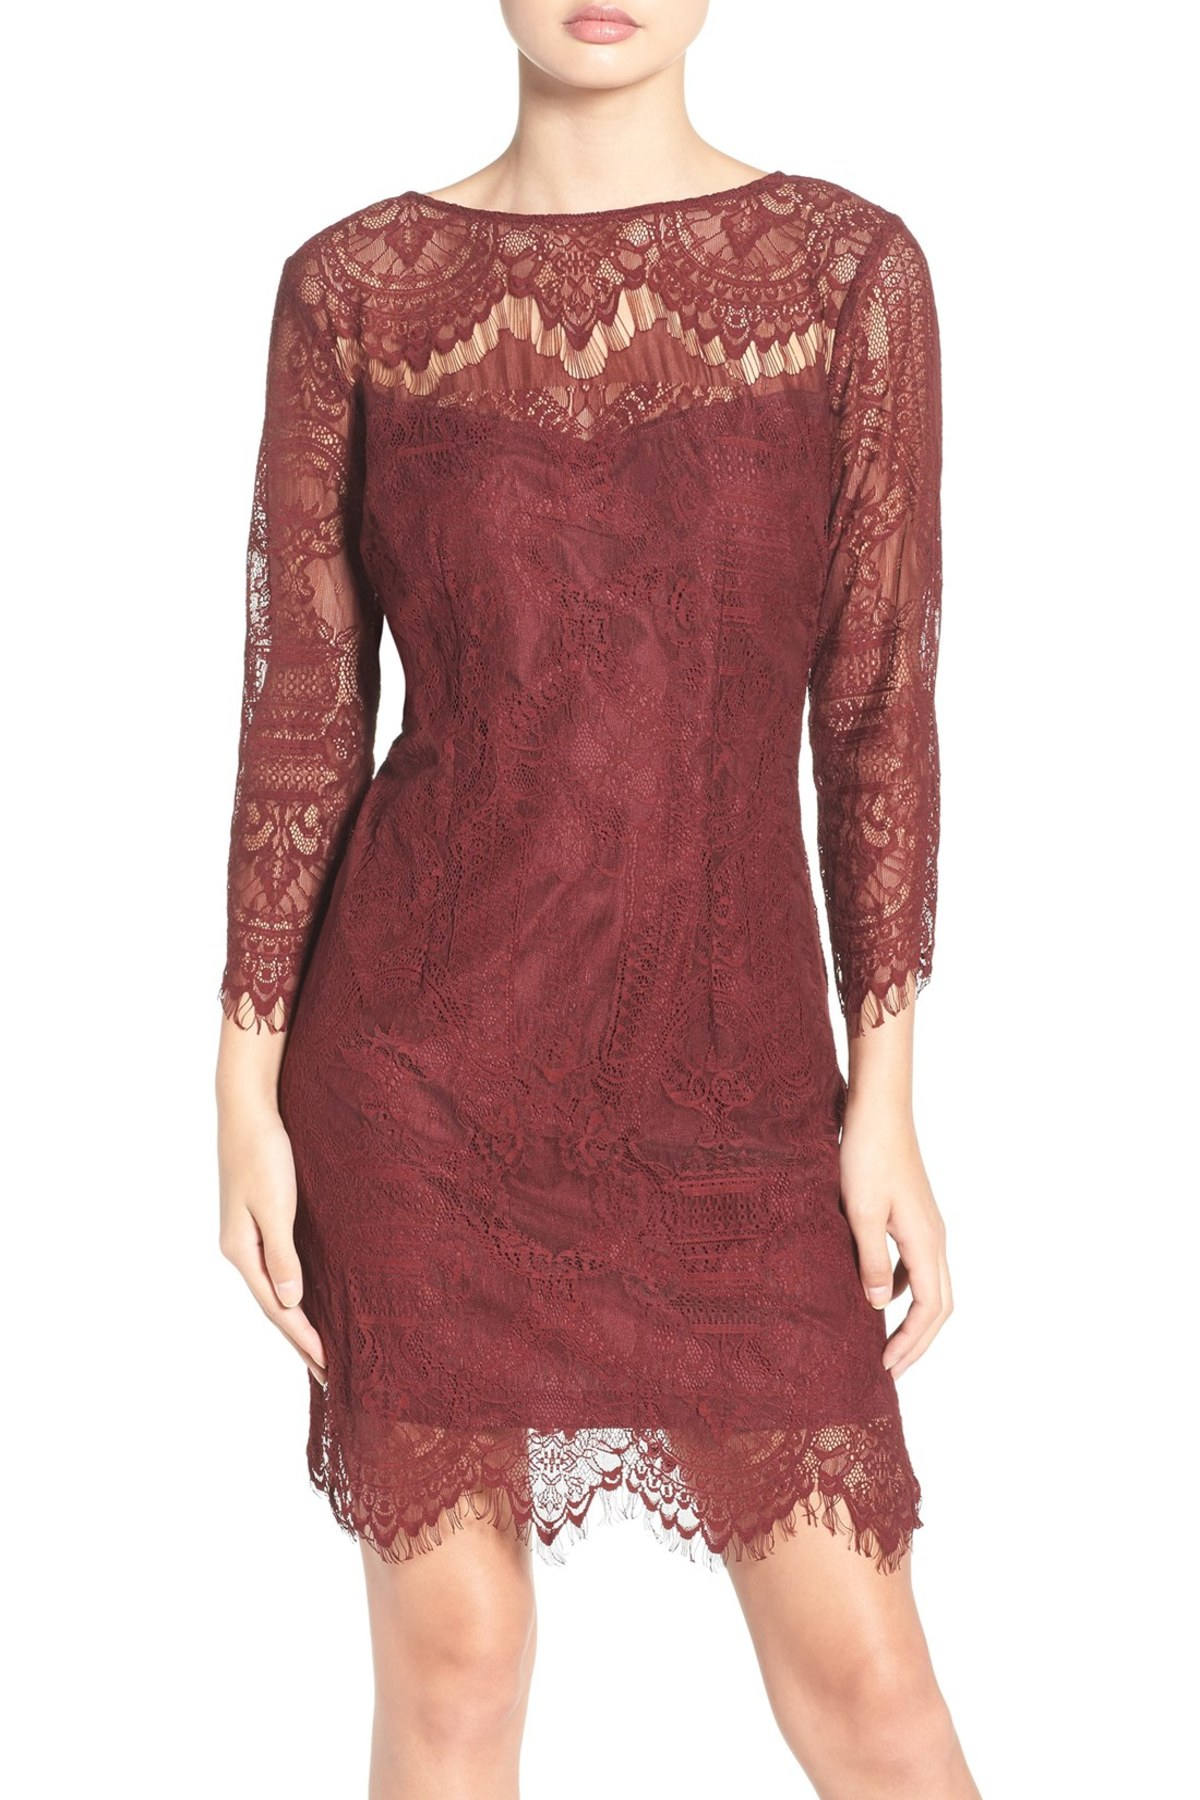 BB Dakota Everton Illusion Lace Sheath Dress in burgundy